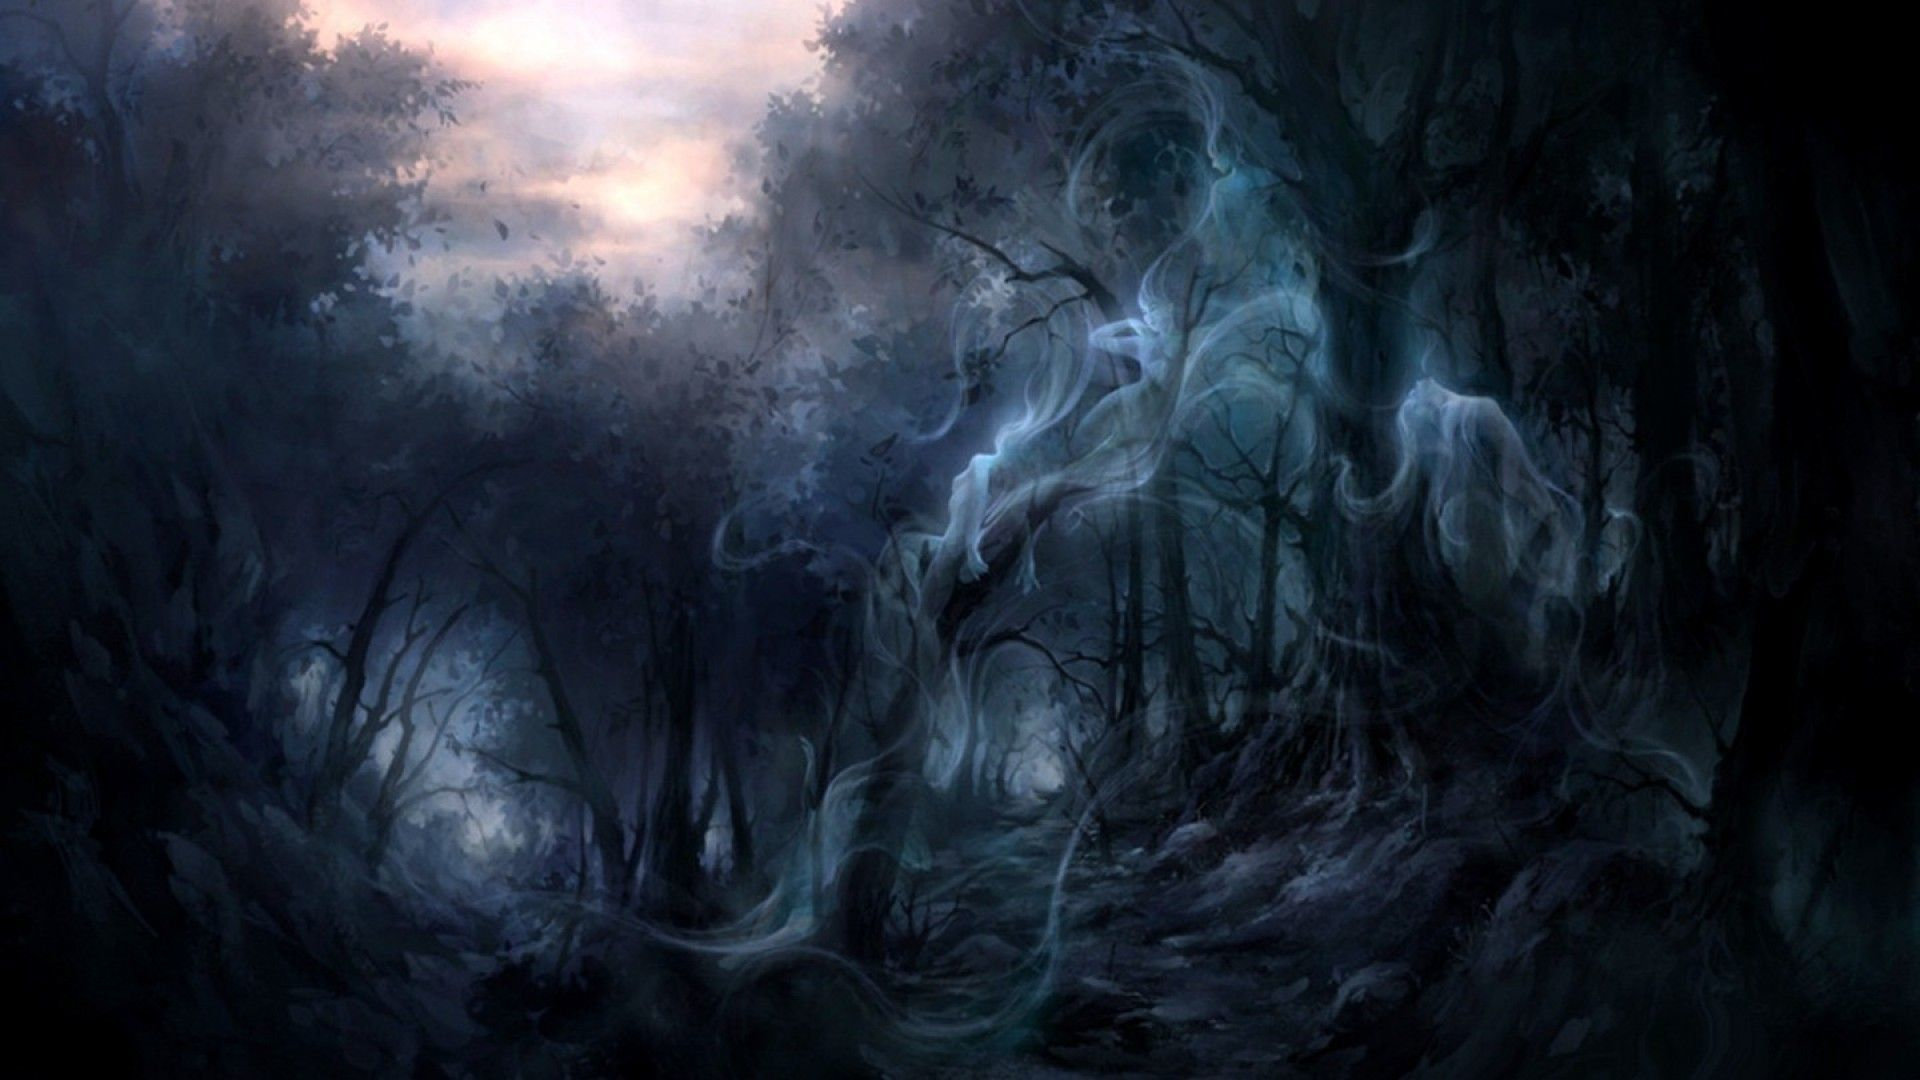 1920x1080 Dark Forest Wallpapers Wallpaper 1920A 1080 Creepy Backgrounds 35